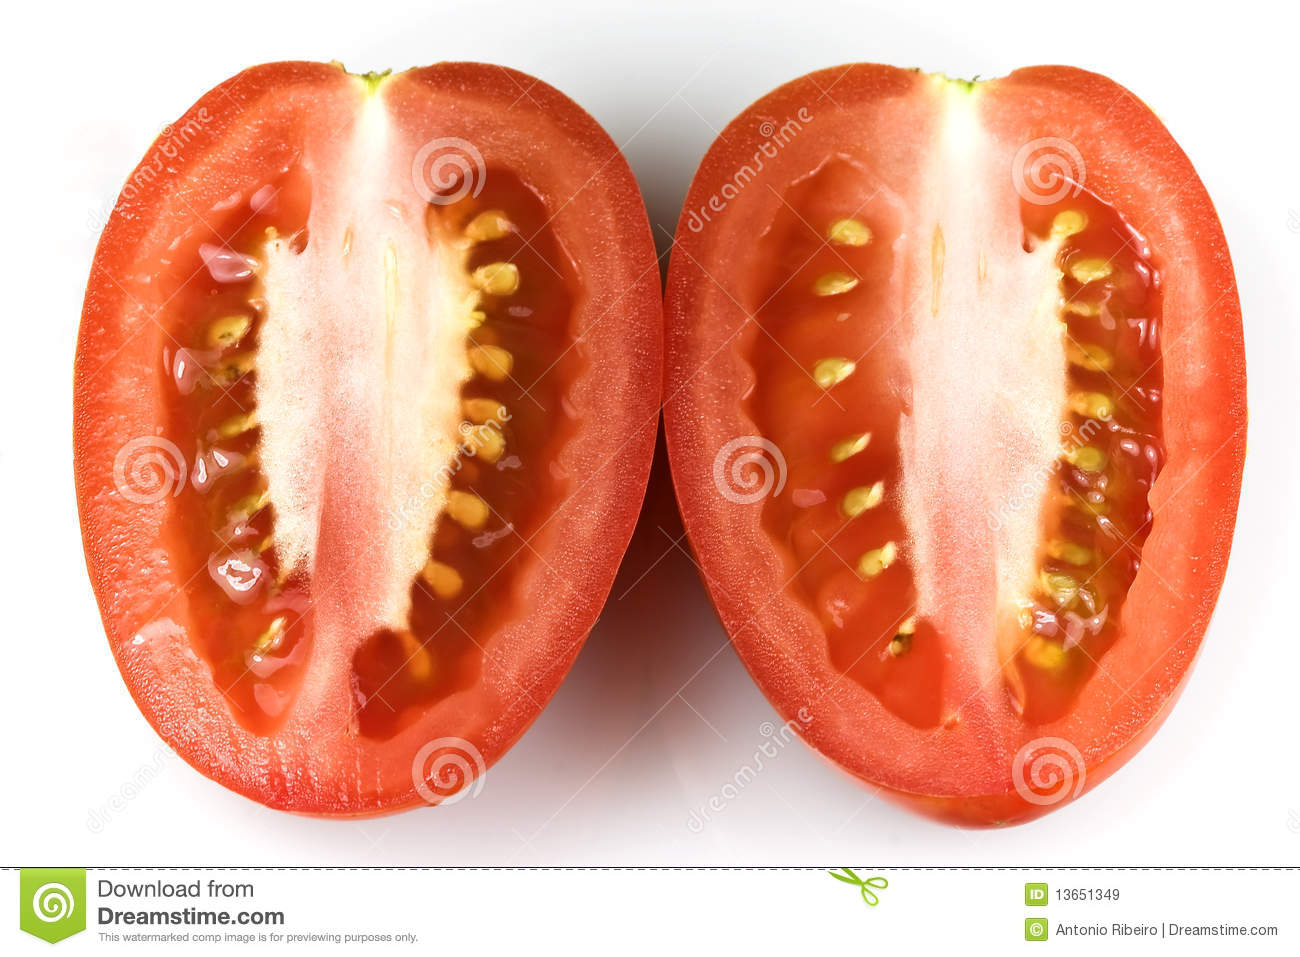 how to cut roma tomatoes